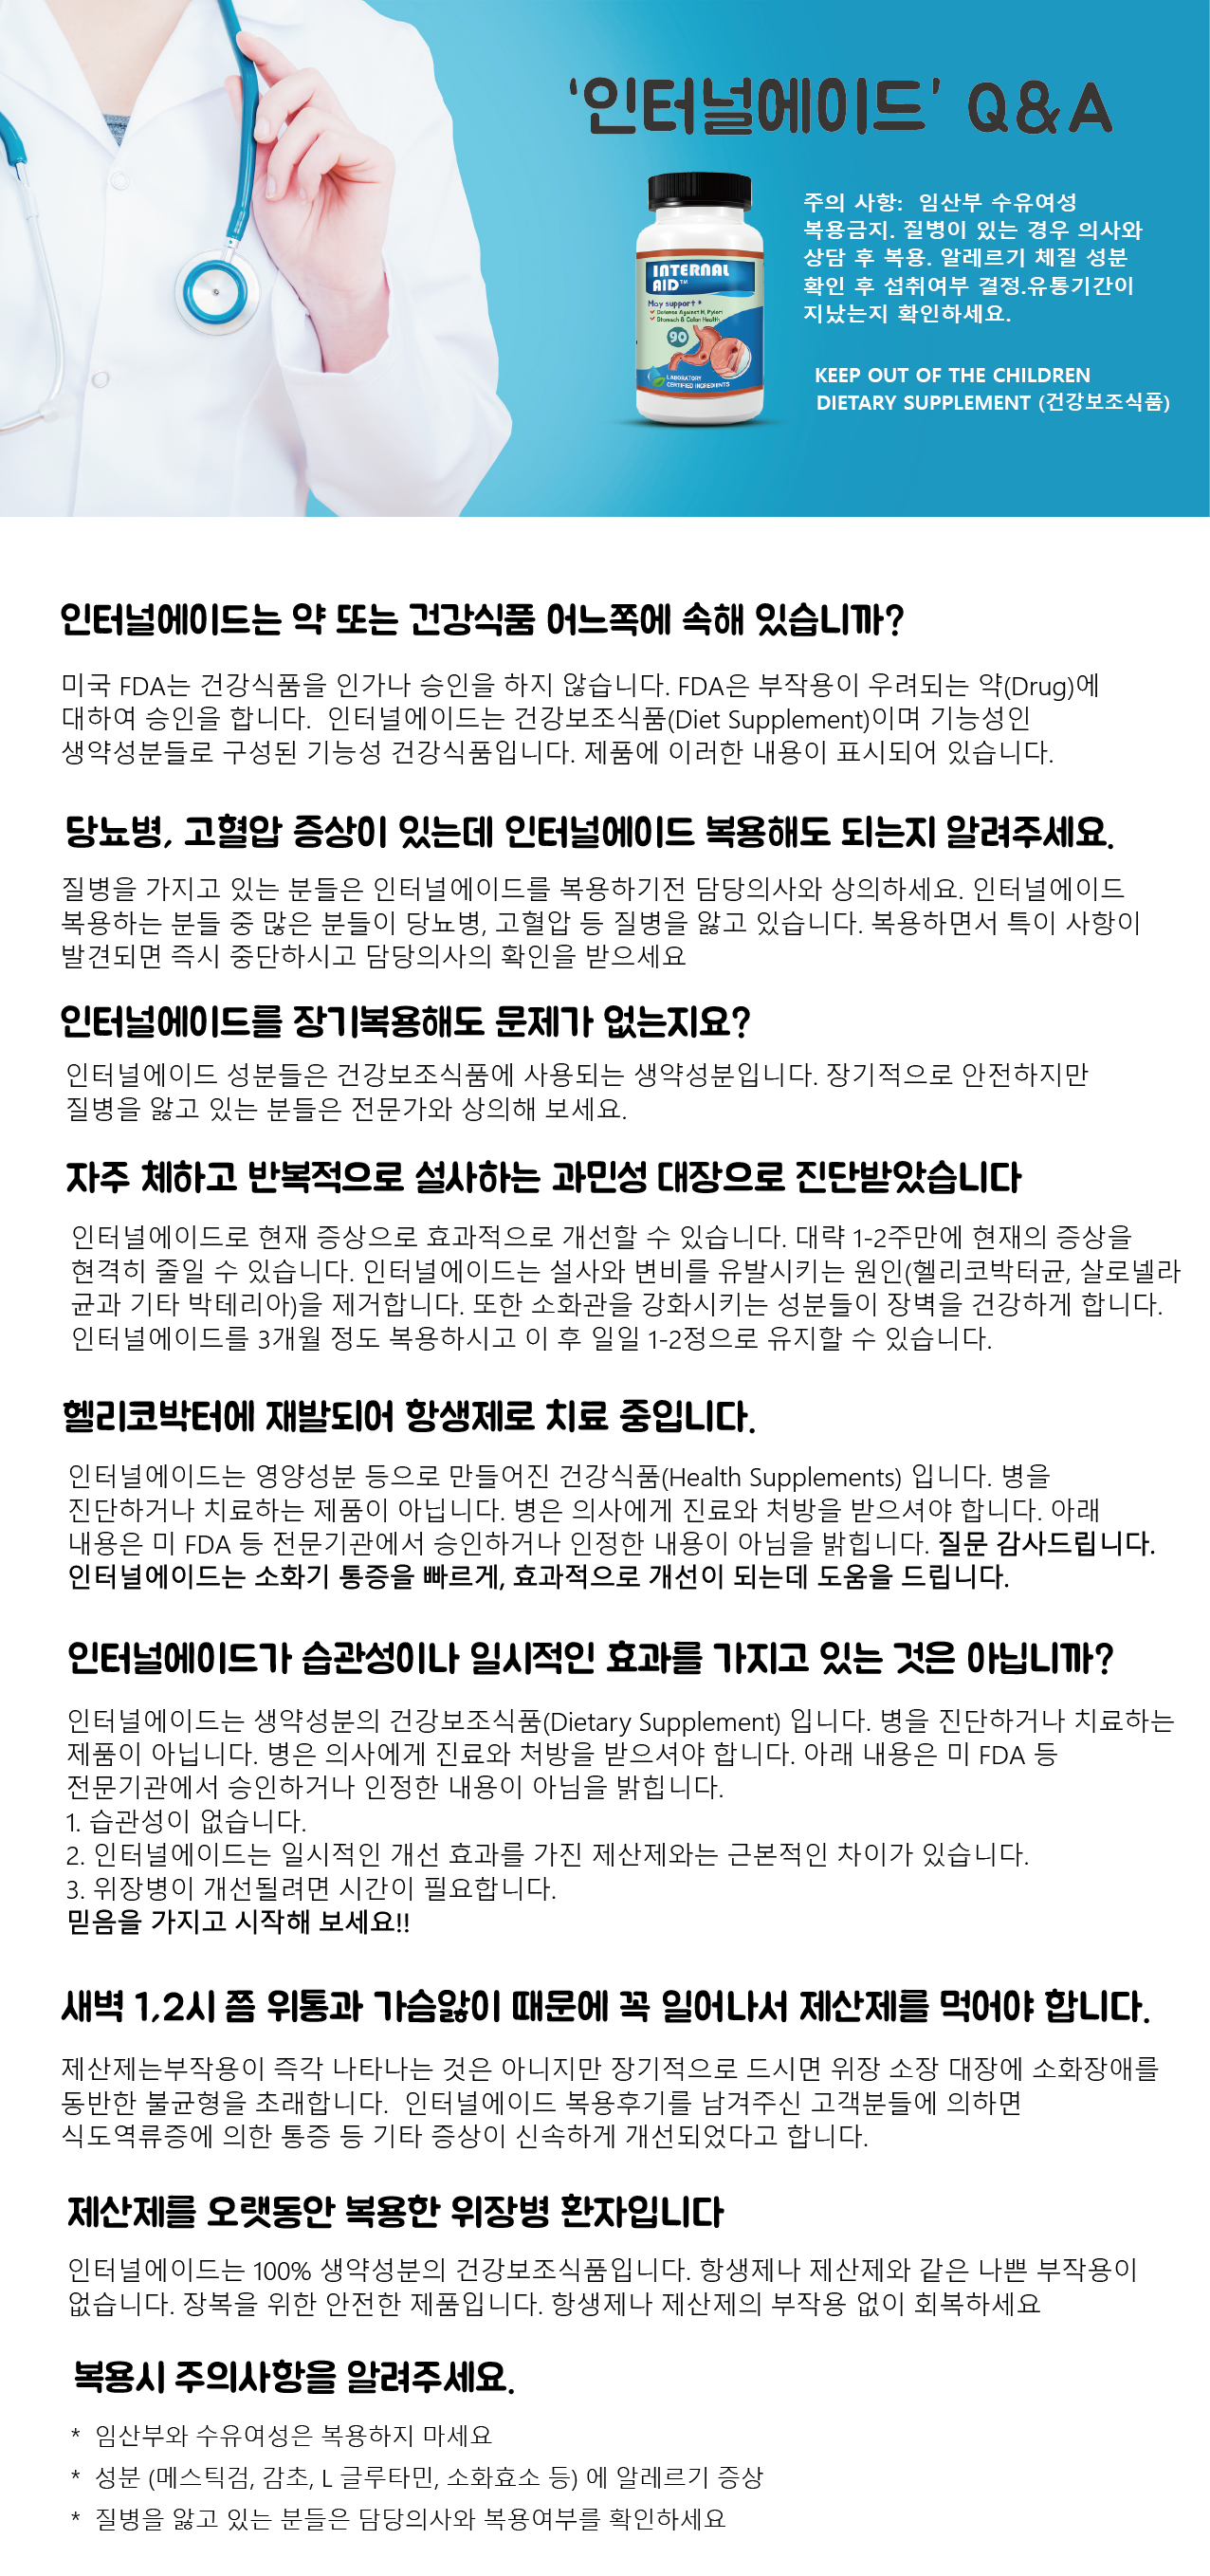 Internalaid FAQ 한국어.png